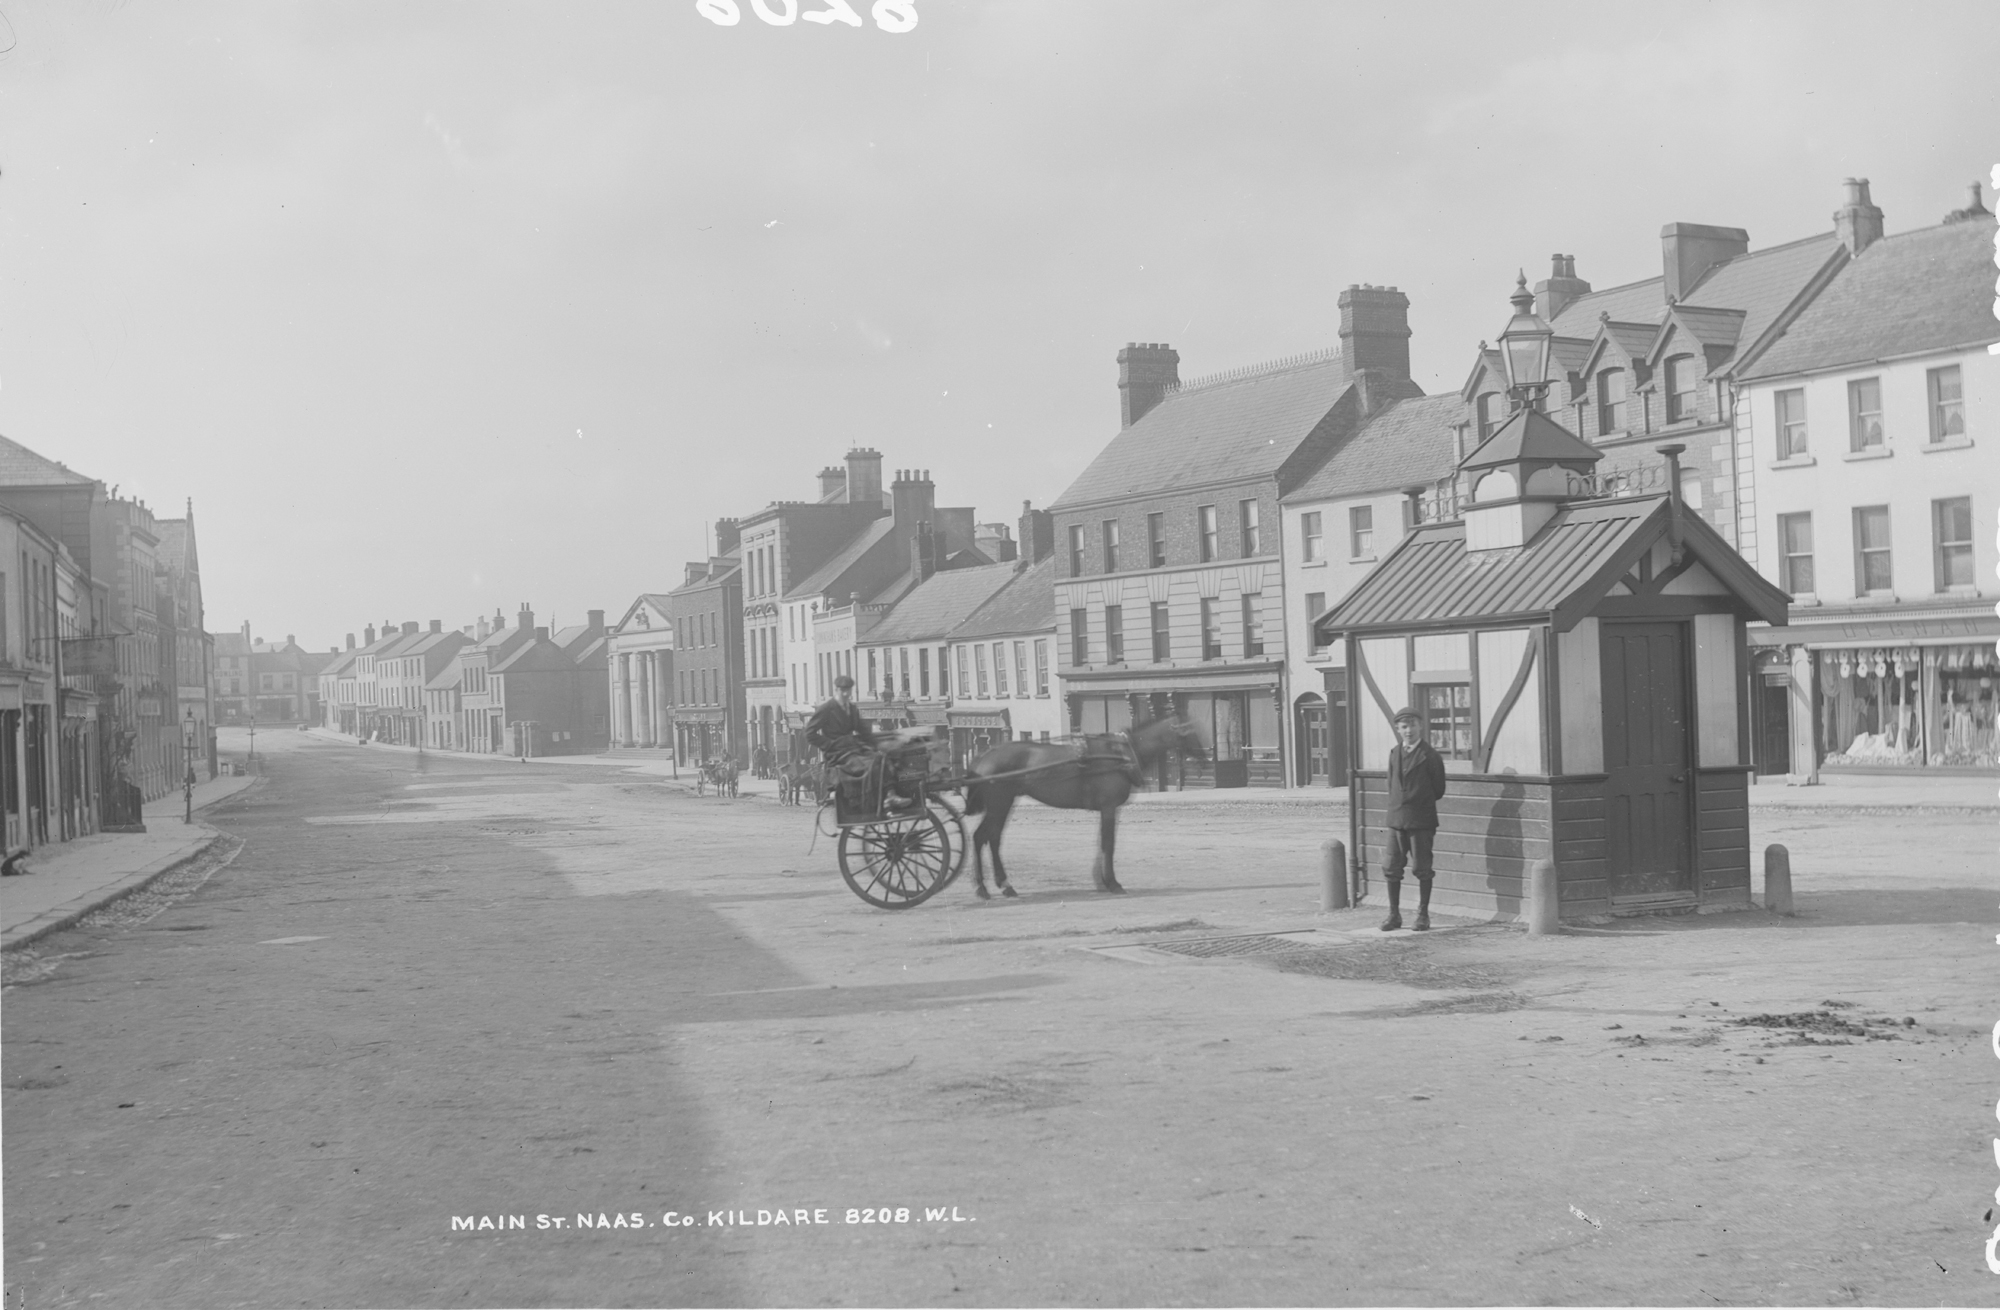 Main Street, Naas, Co. Kildare